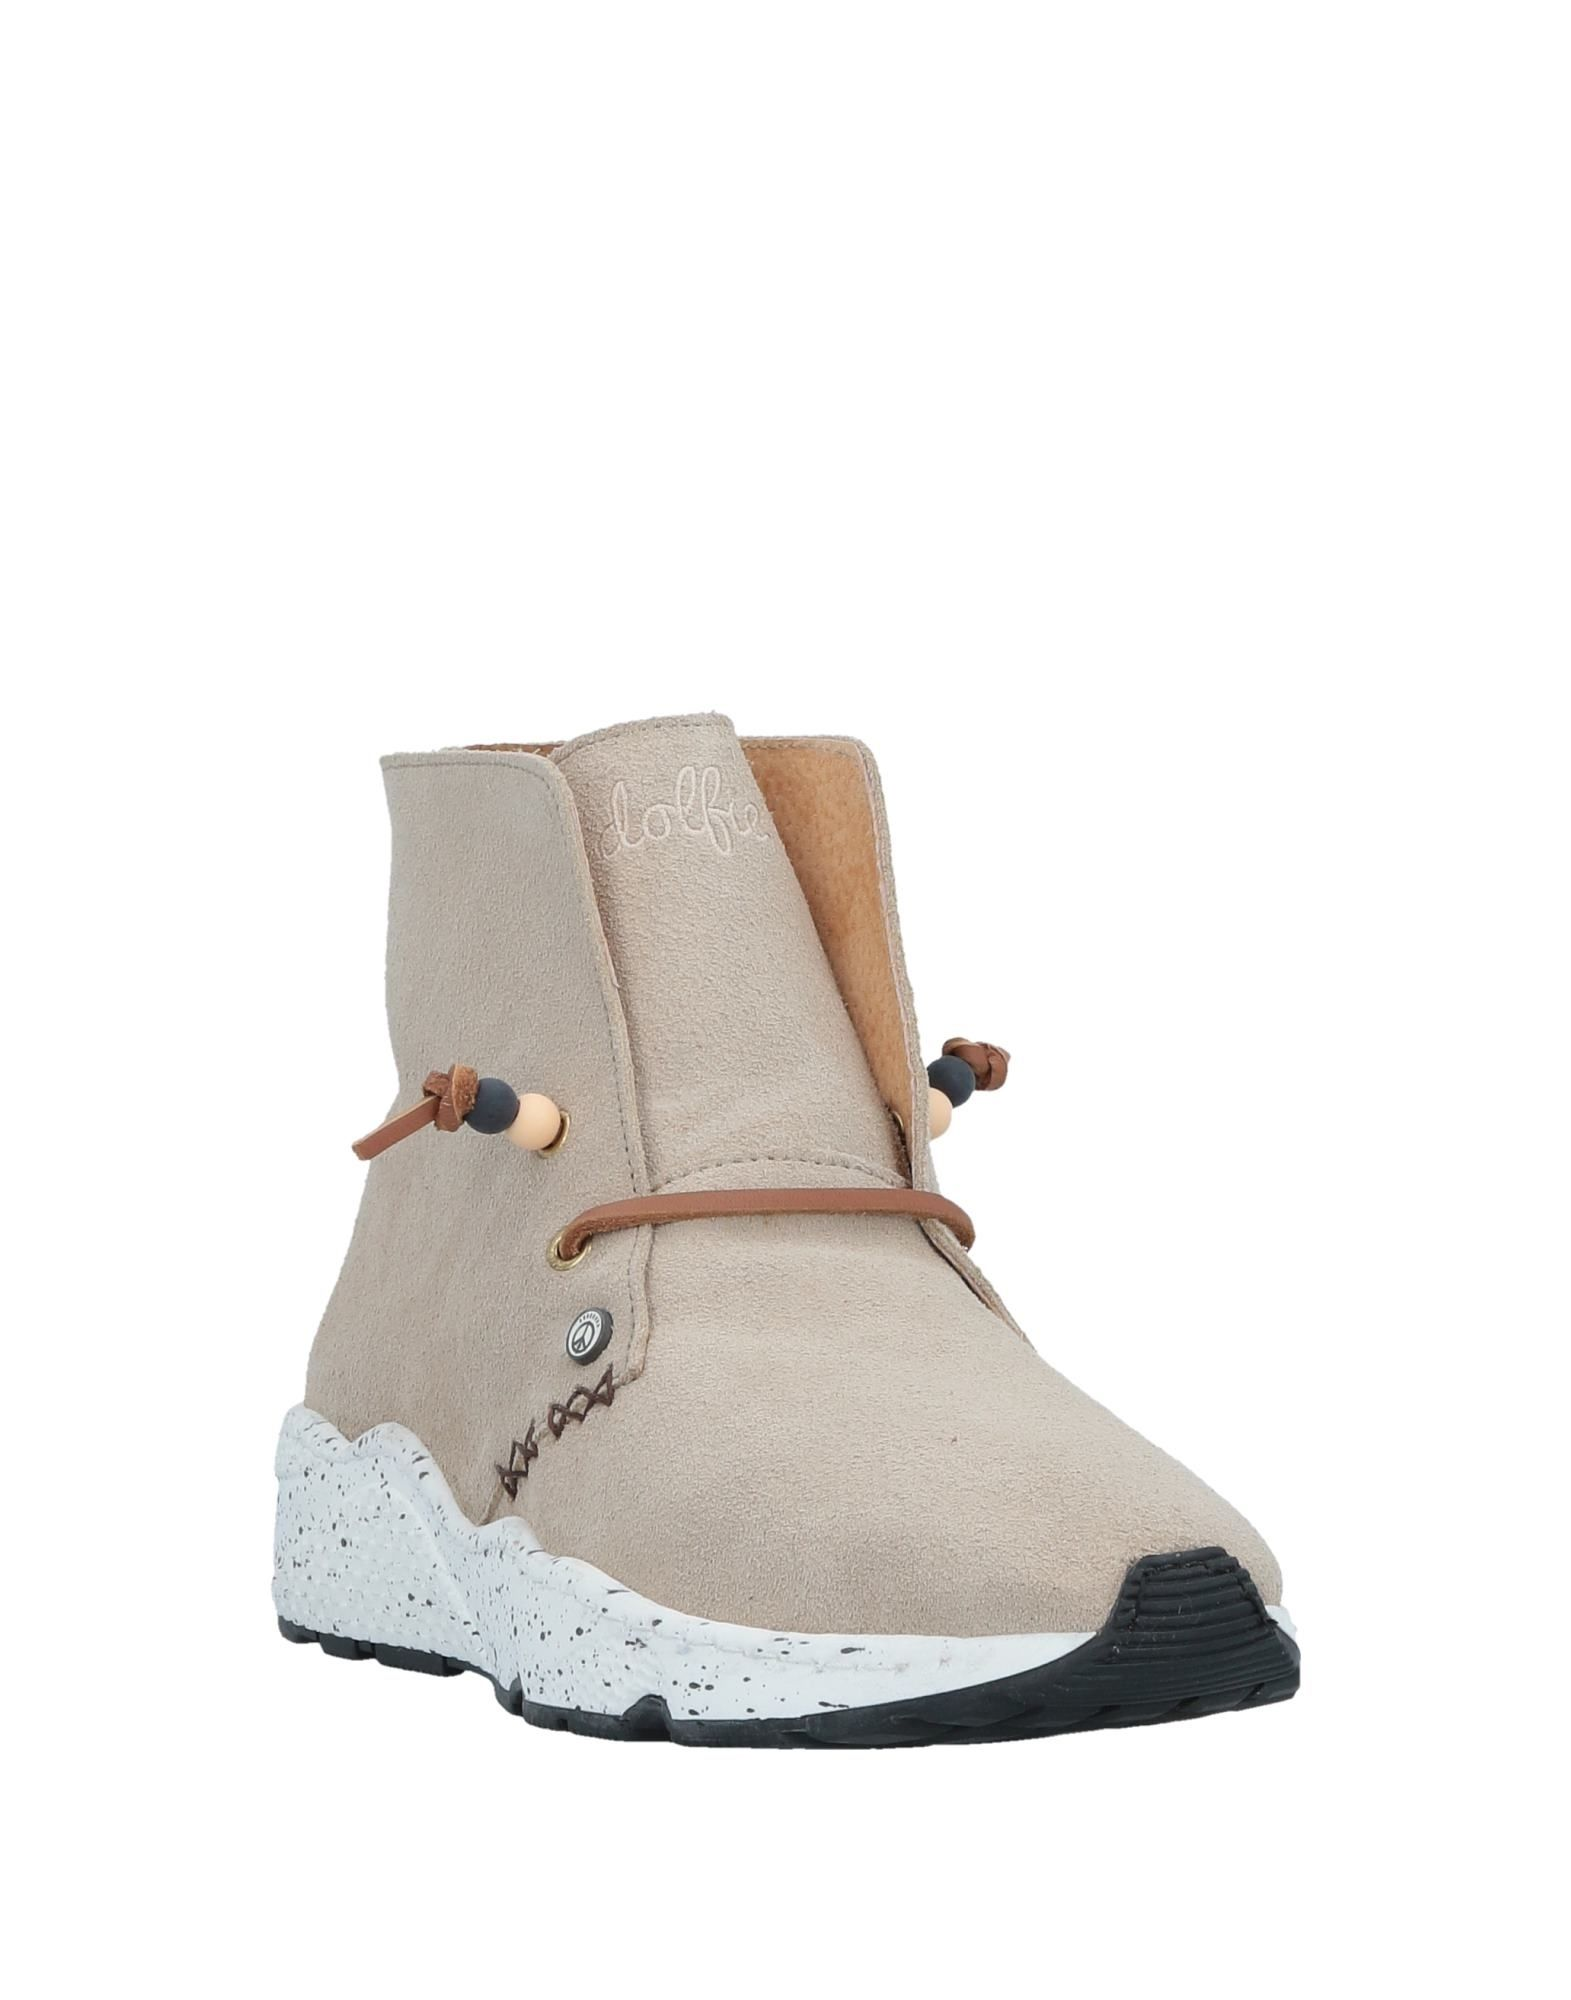 Dolfie Boots - Men Dolfie Boots online on  Canada Canada Canada - 11529089BG 63a31f